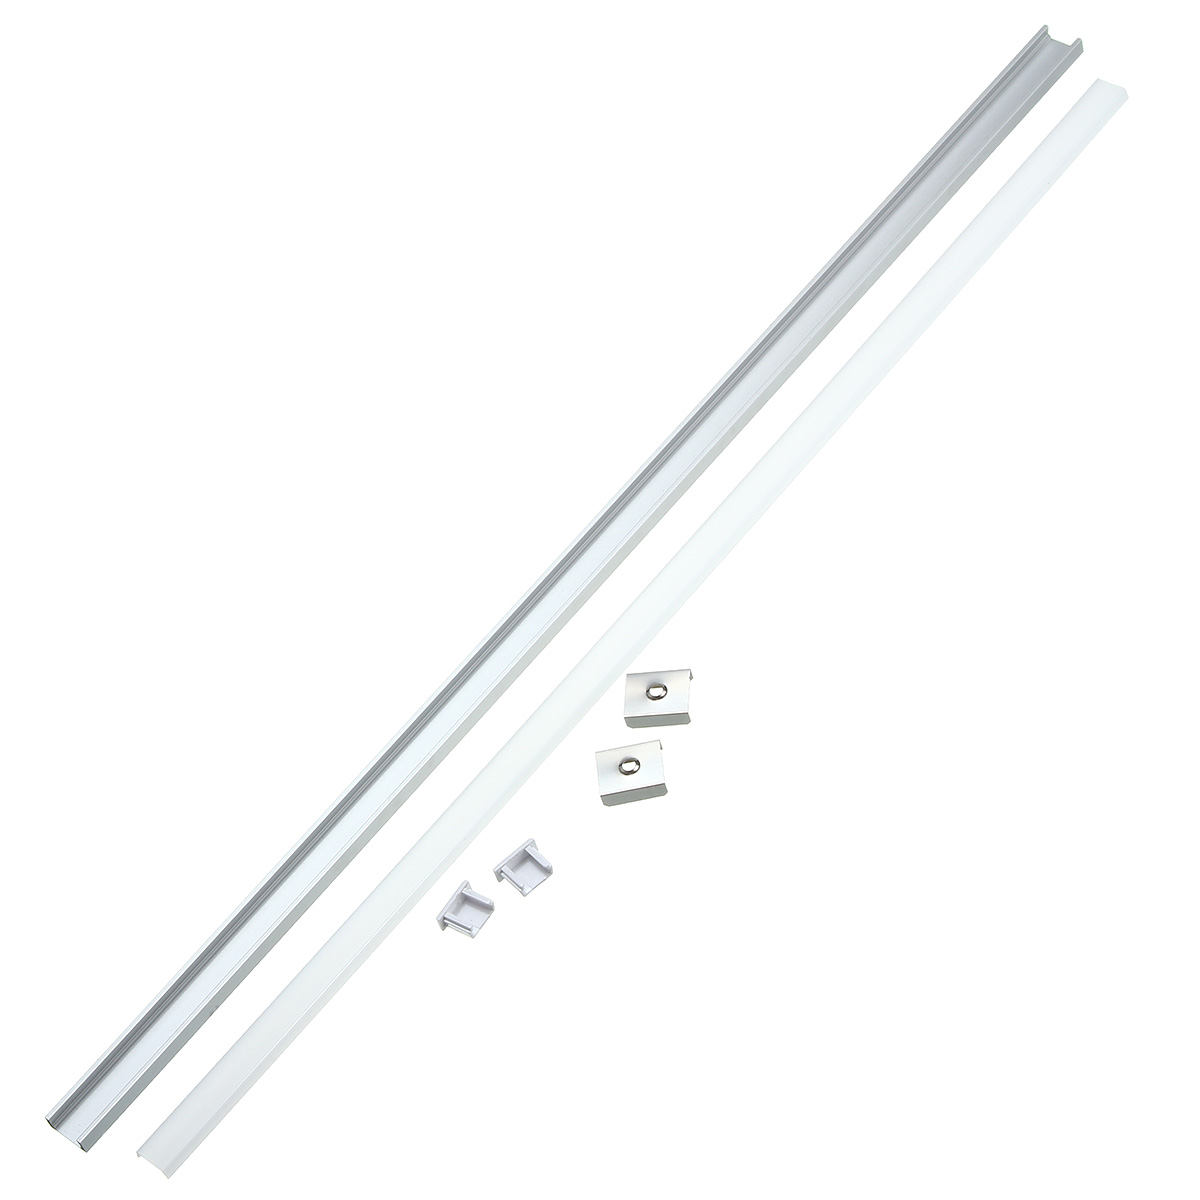 30/50CM XH-U1 U-Style Aluminum Channel Holder For LED Strip Light Bar Under Cabinet Lamp Lighting